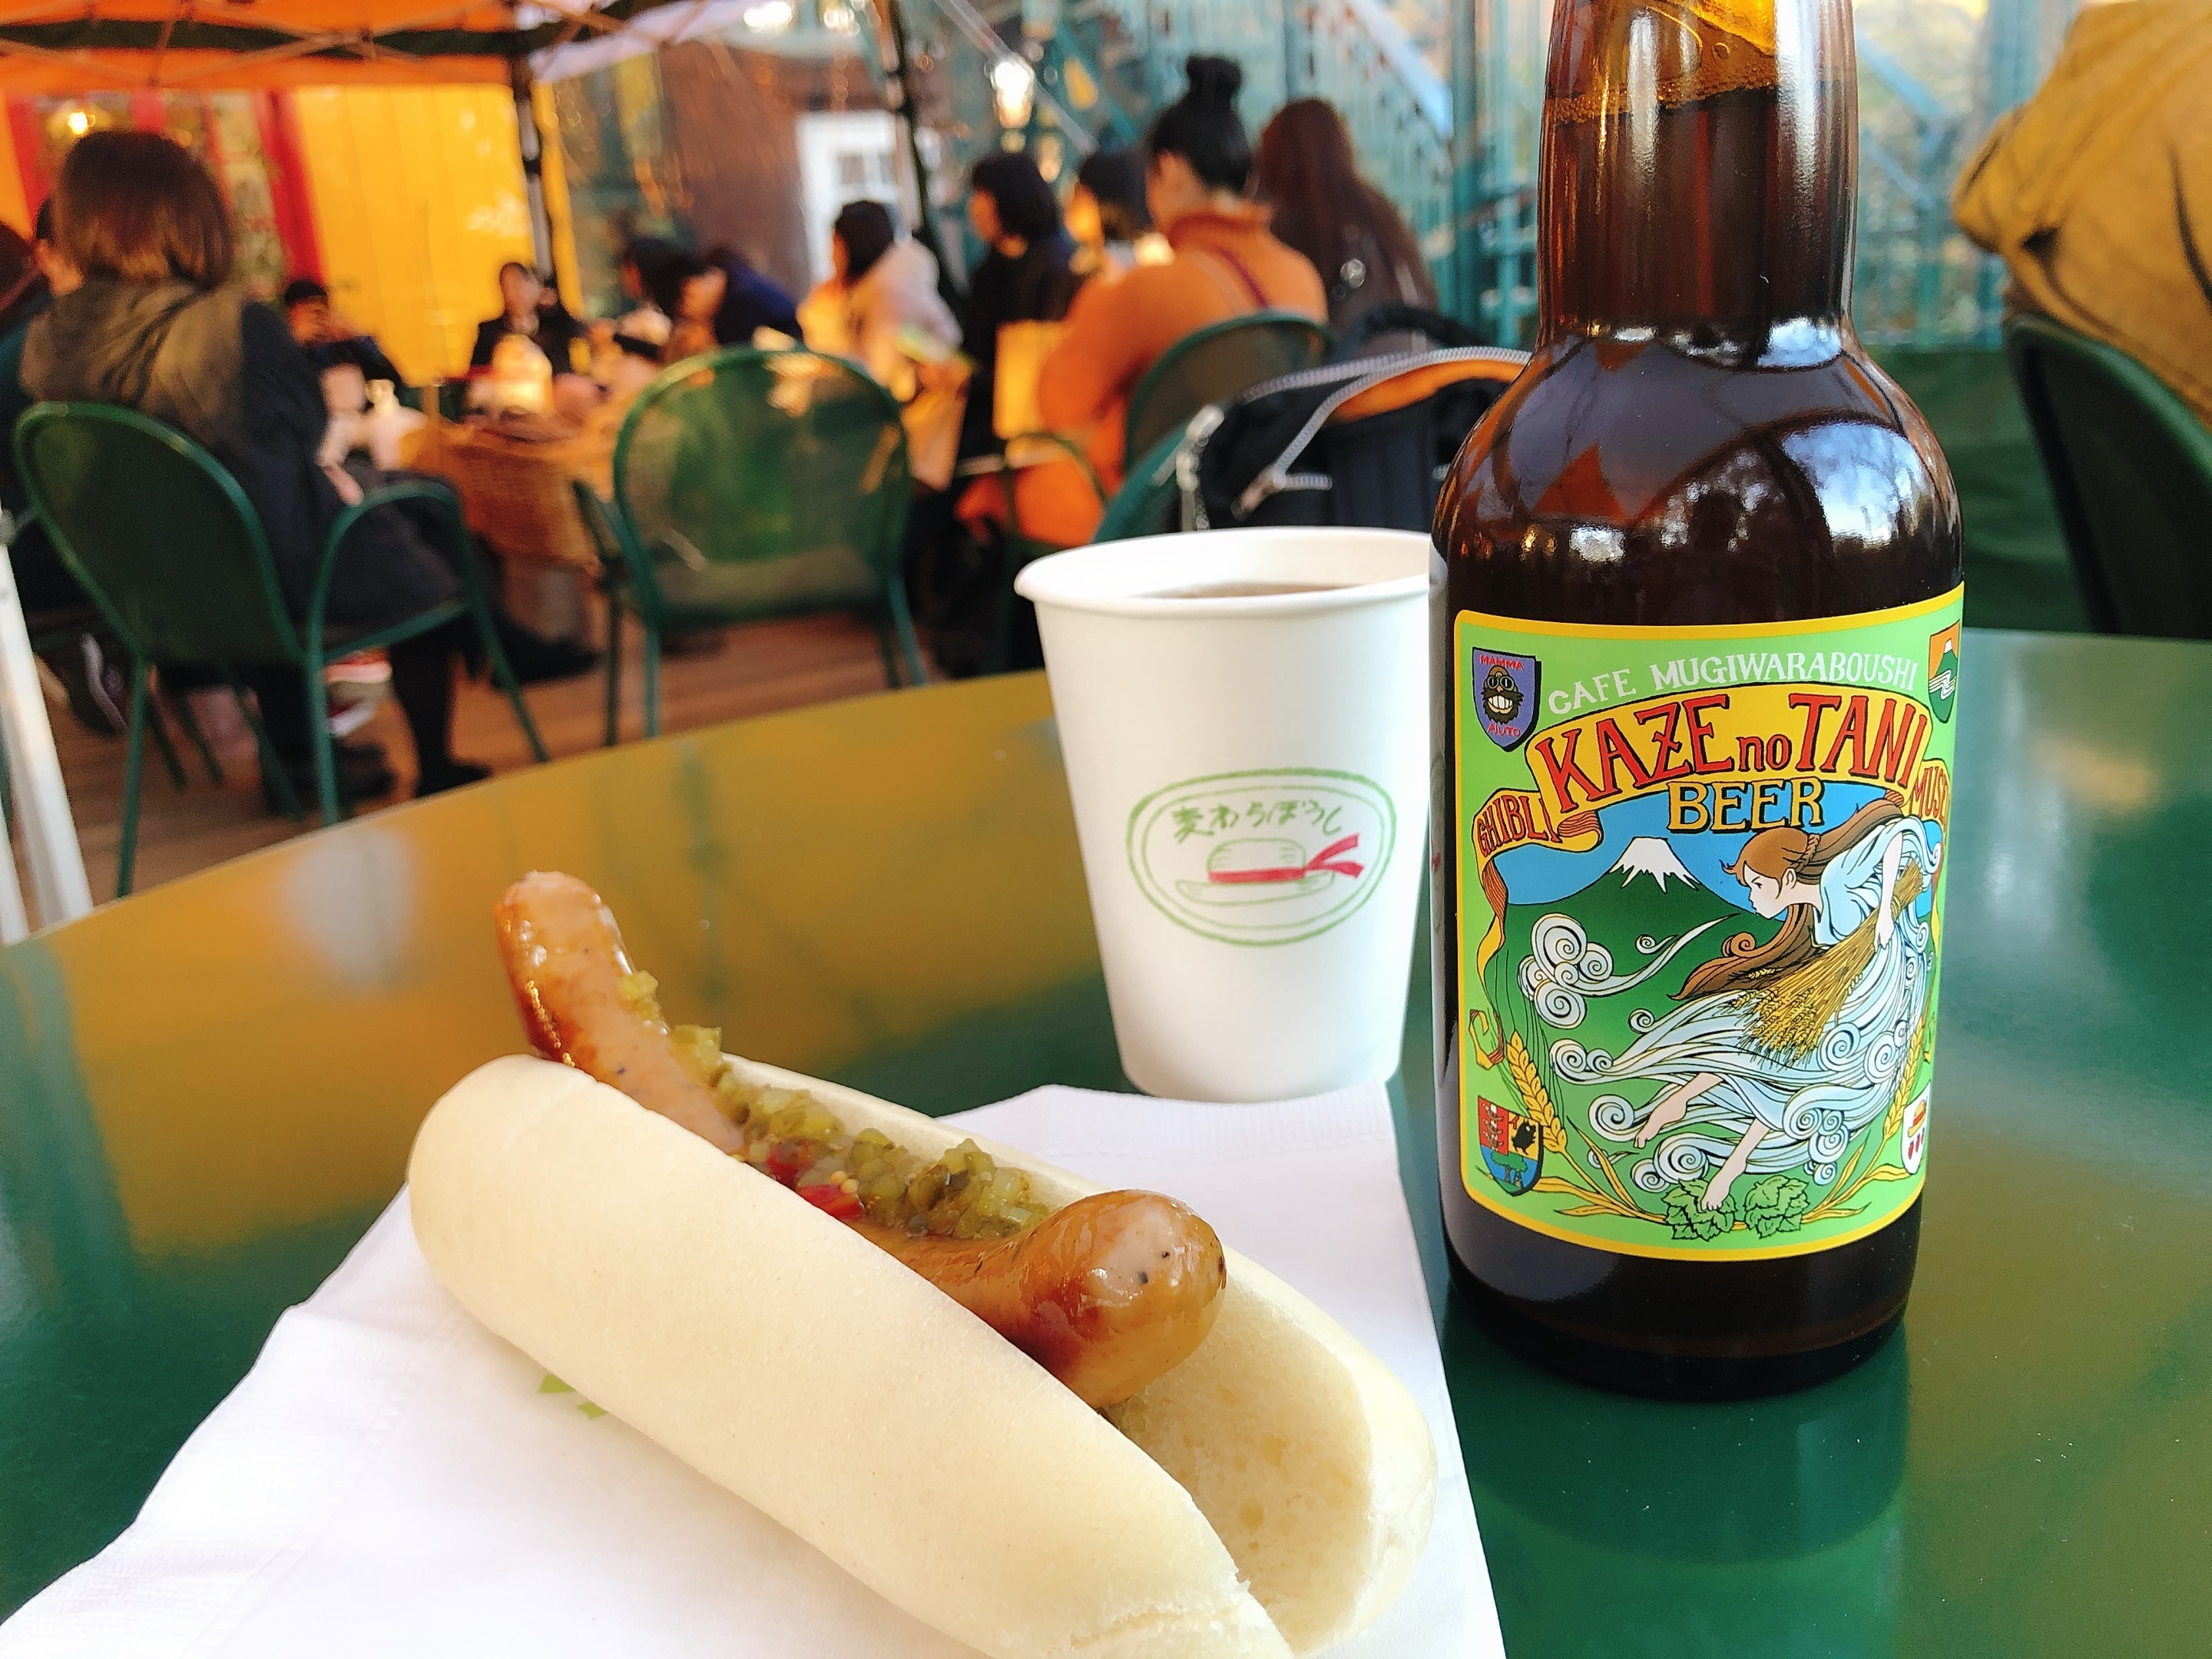 A hotdog and a bottle of beer at Café Deck Area